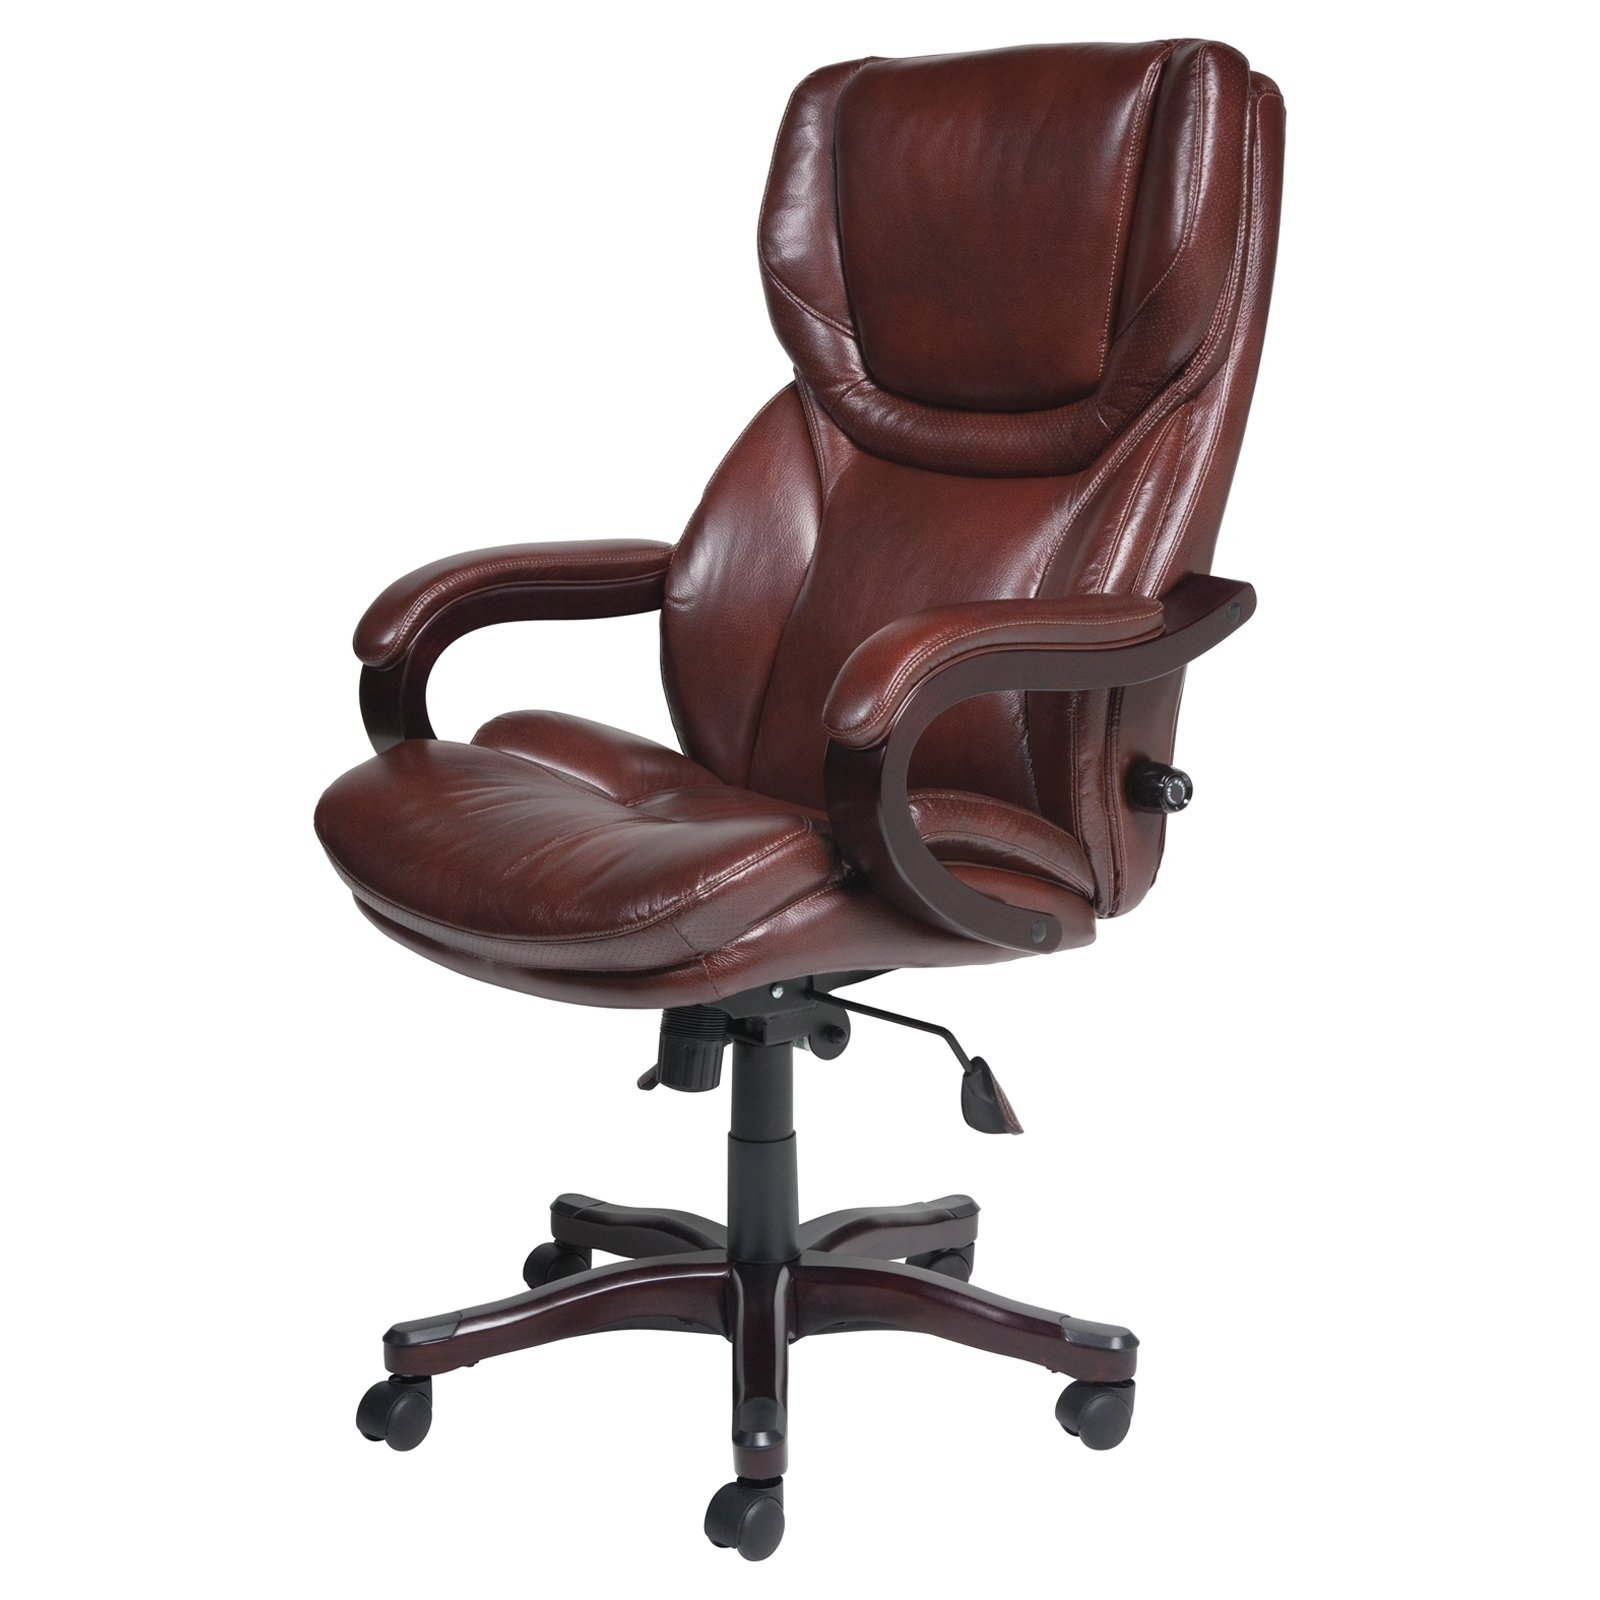 2018 Xl Executive Office Chairs Pertaining To High Back Office Chair Pu Leather Executive Ergonomic Swivel Lift (View 2 of 20)